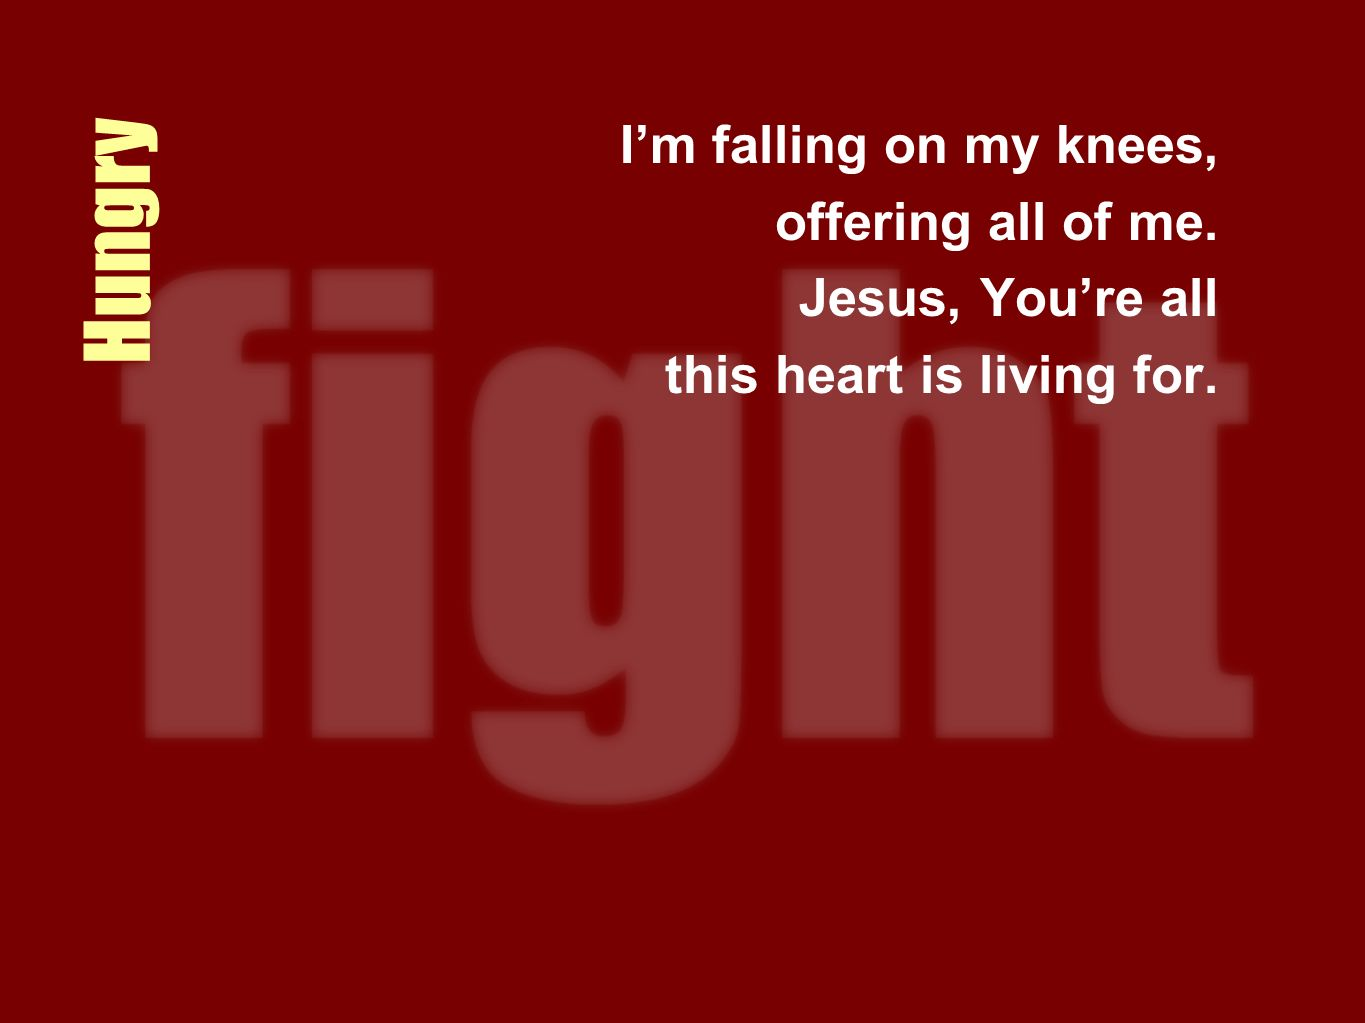 Hungry Im falling on my knees, offering all of me. Jesus, Youre all this heart is living for.